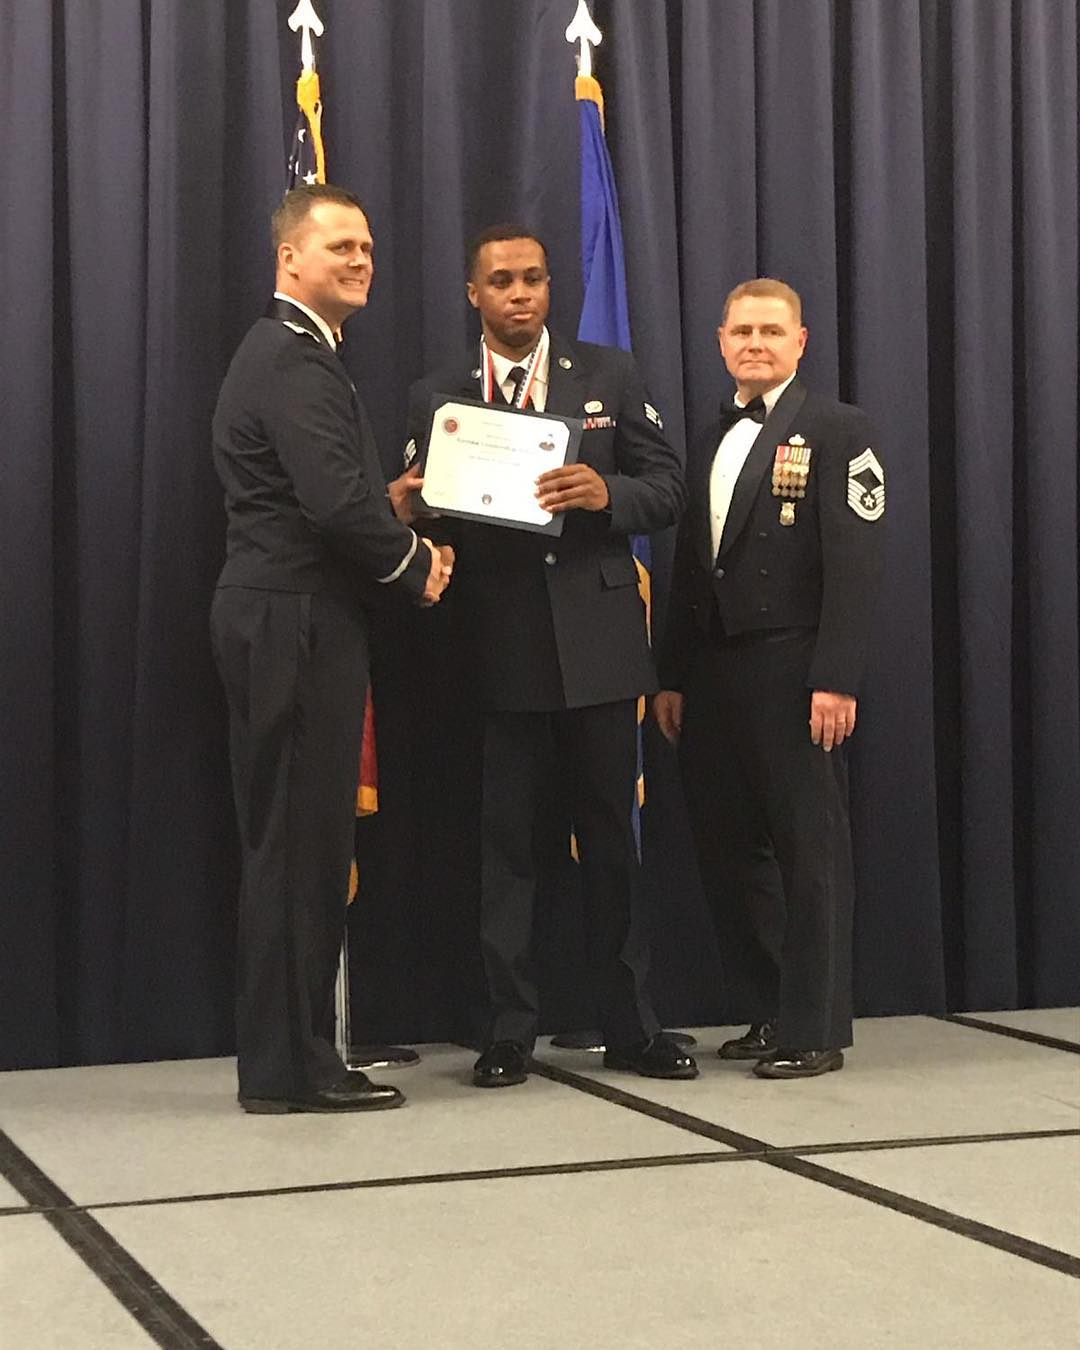 nollywood star bukky wright s son bags degree from united states air force photos 2 - Nollywood Actress Bukky Wright's Son Bags Degree From The United States Air Force